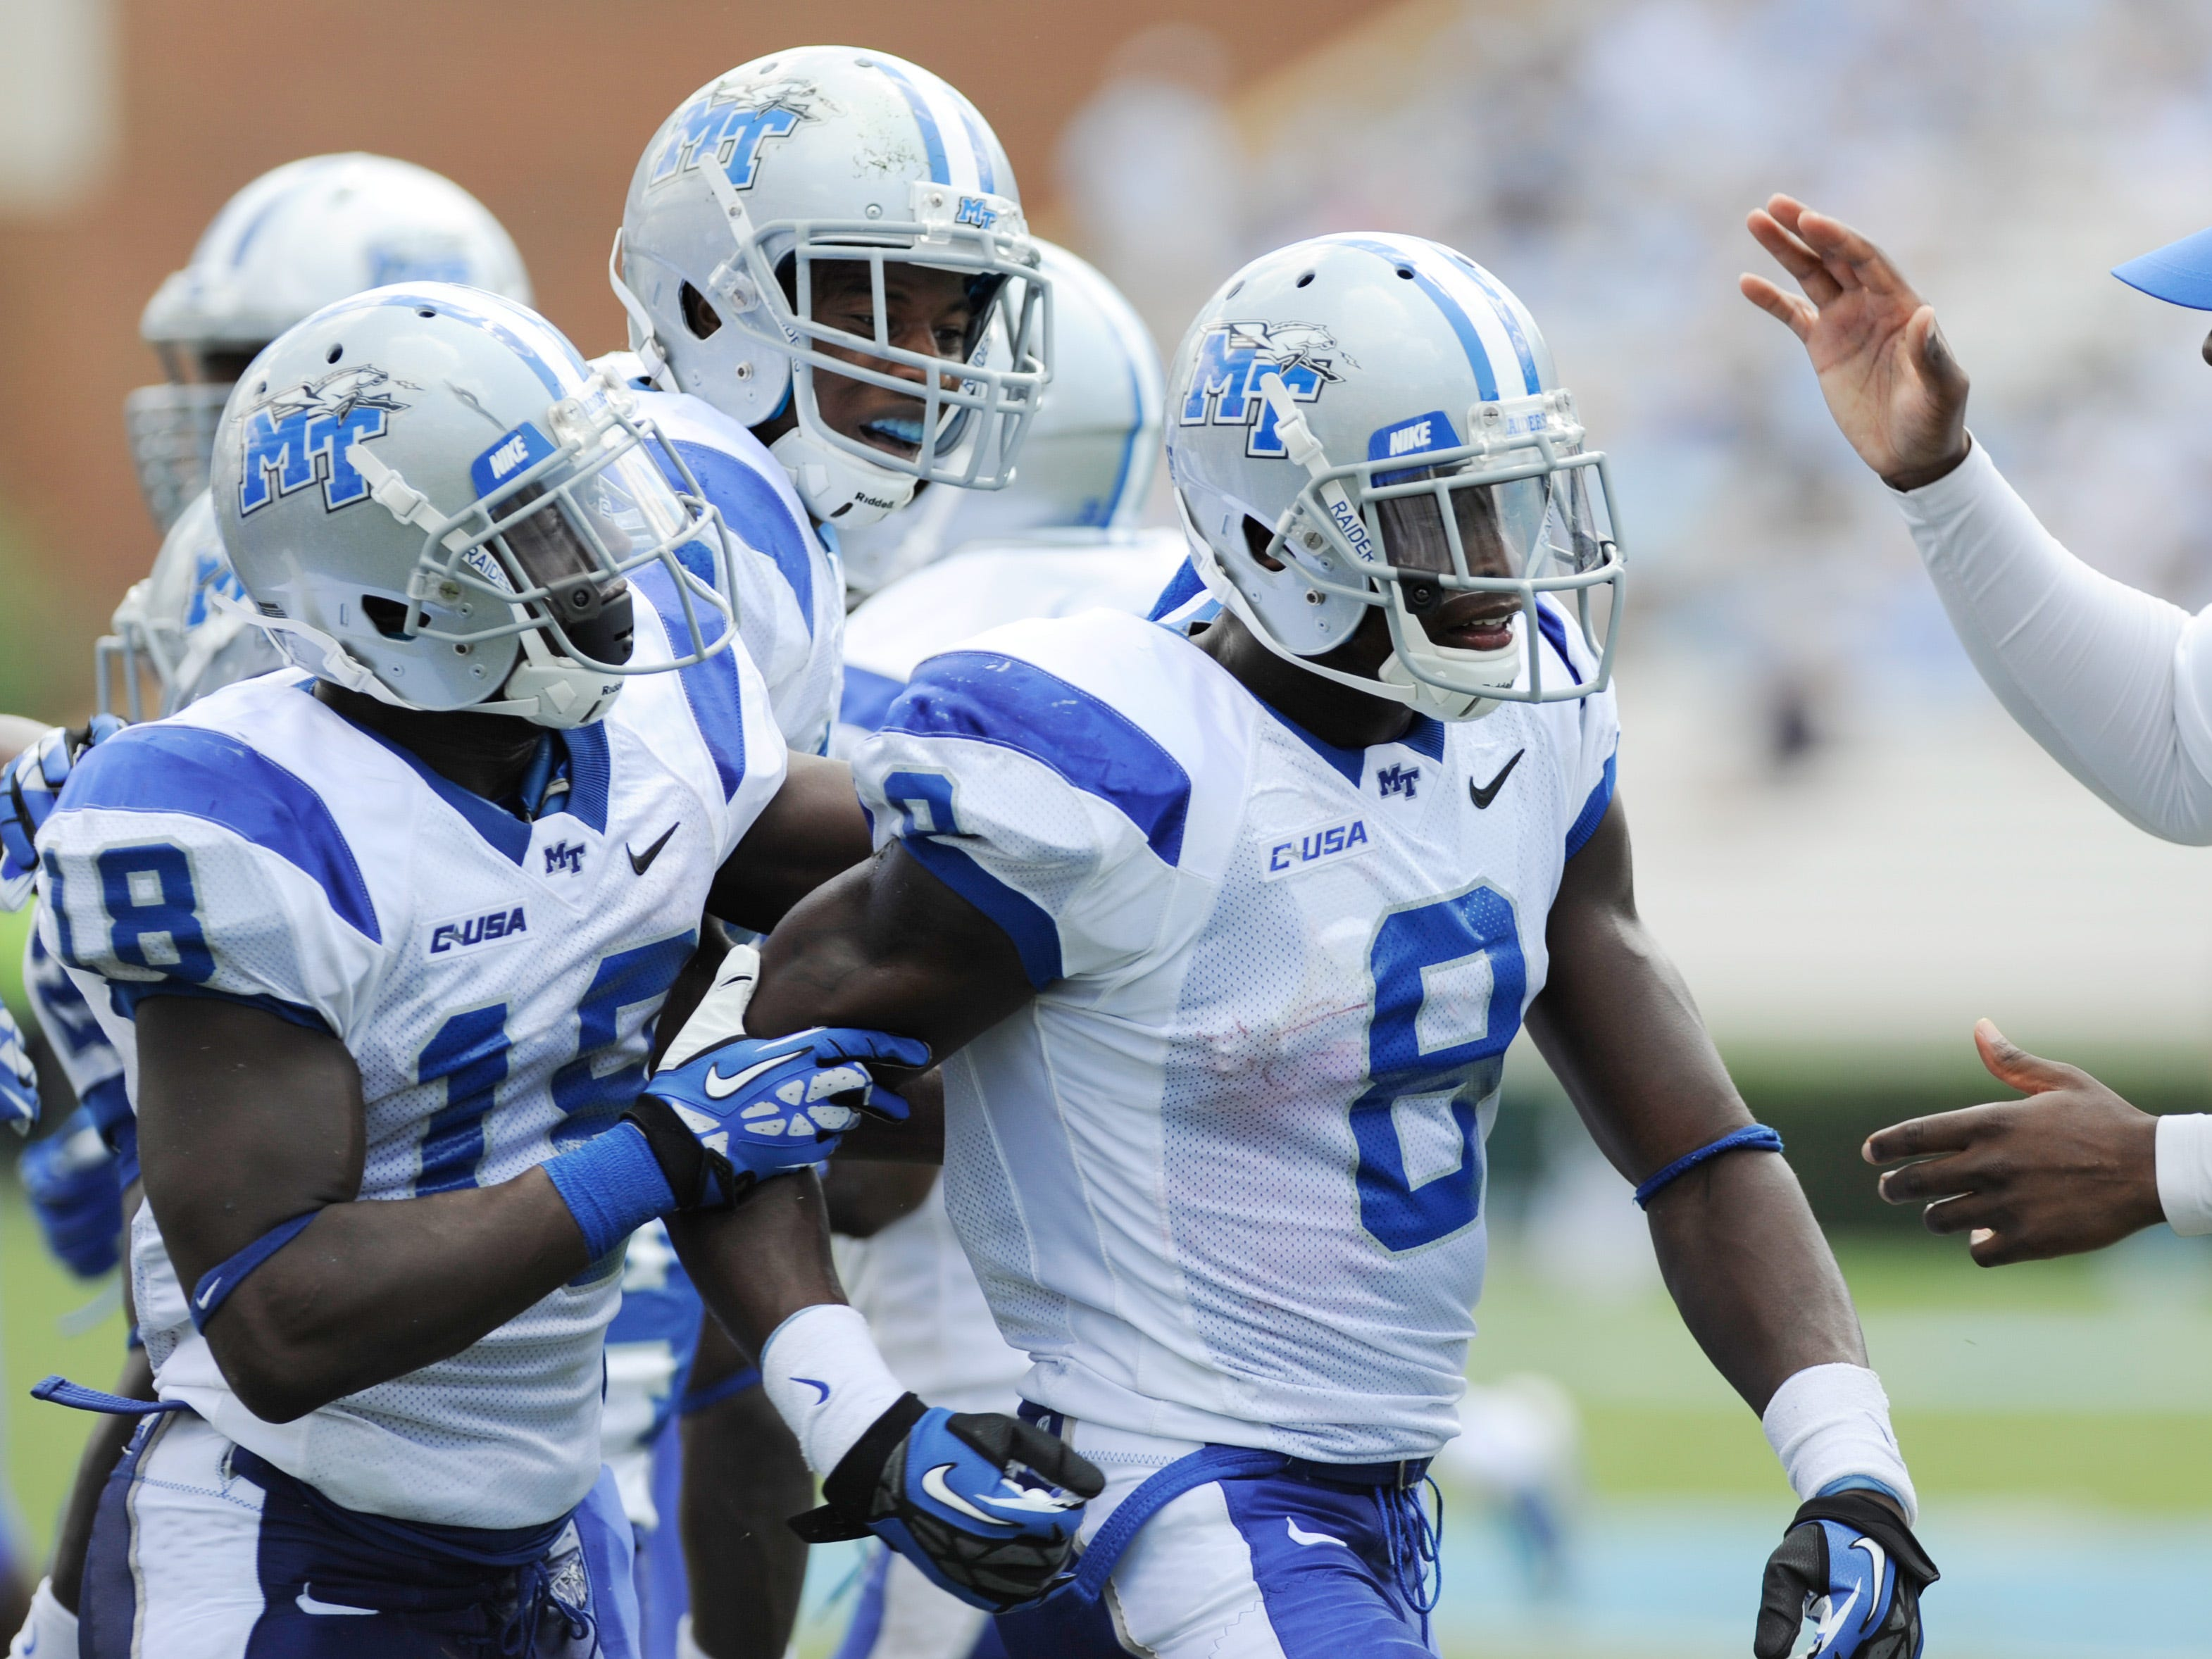 MTSU defensive backs Kenneth Gilstrap (18) and Sammy Seamster (8) are greeted by defensive line graduate assistant Dwight Smith during the Blue Raiders' game against North Carolina in 2013.